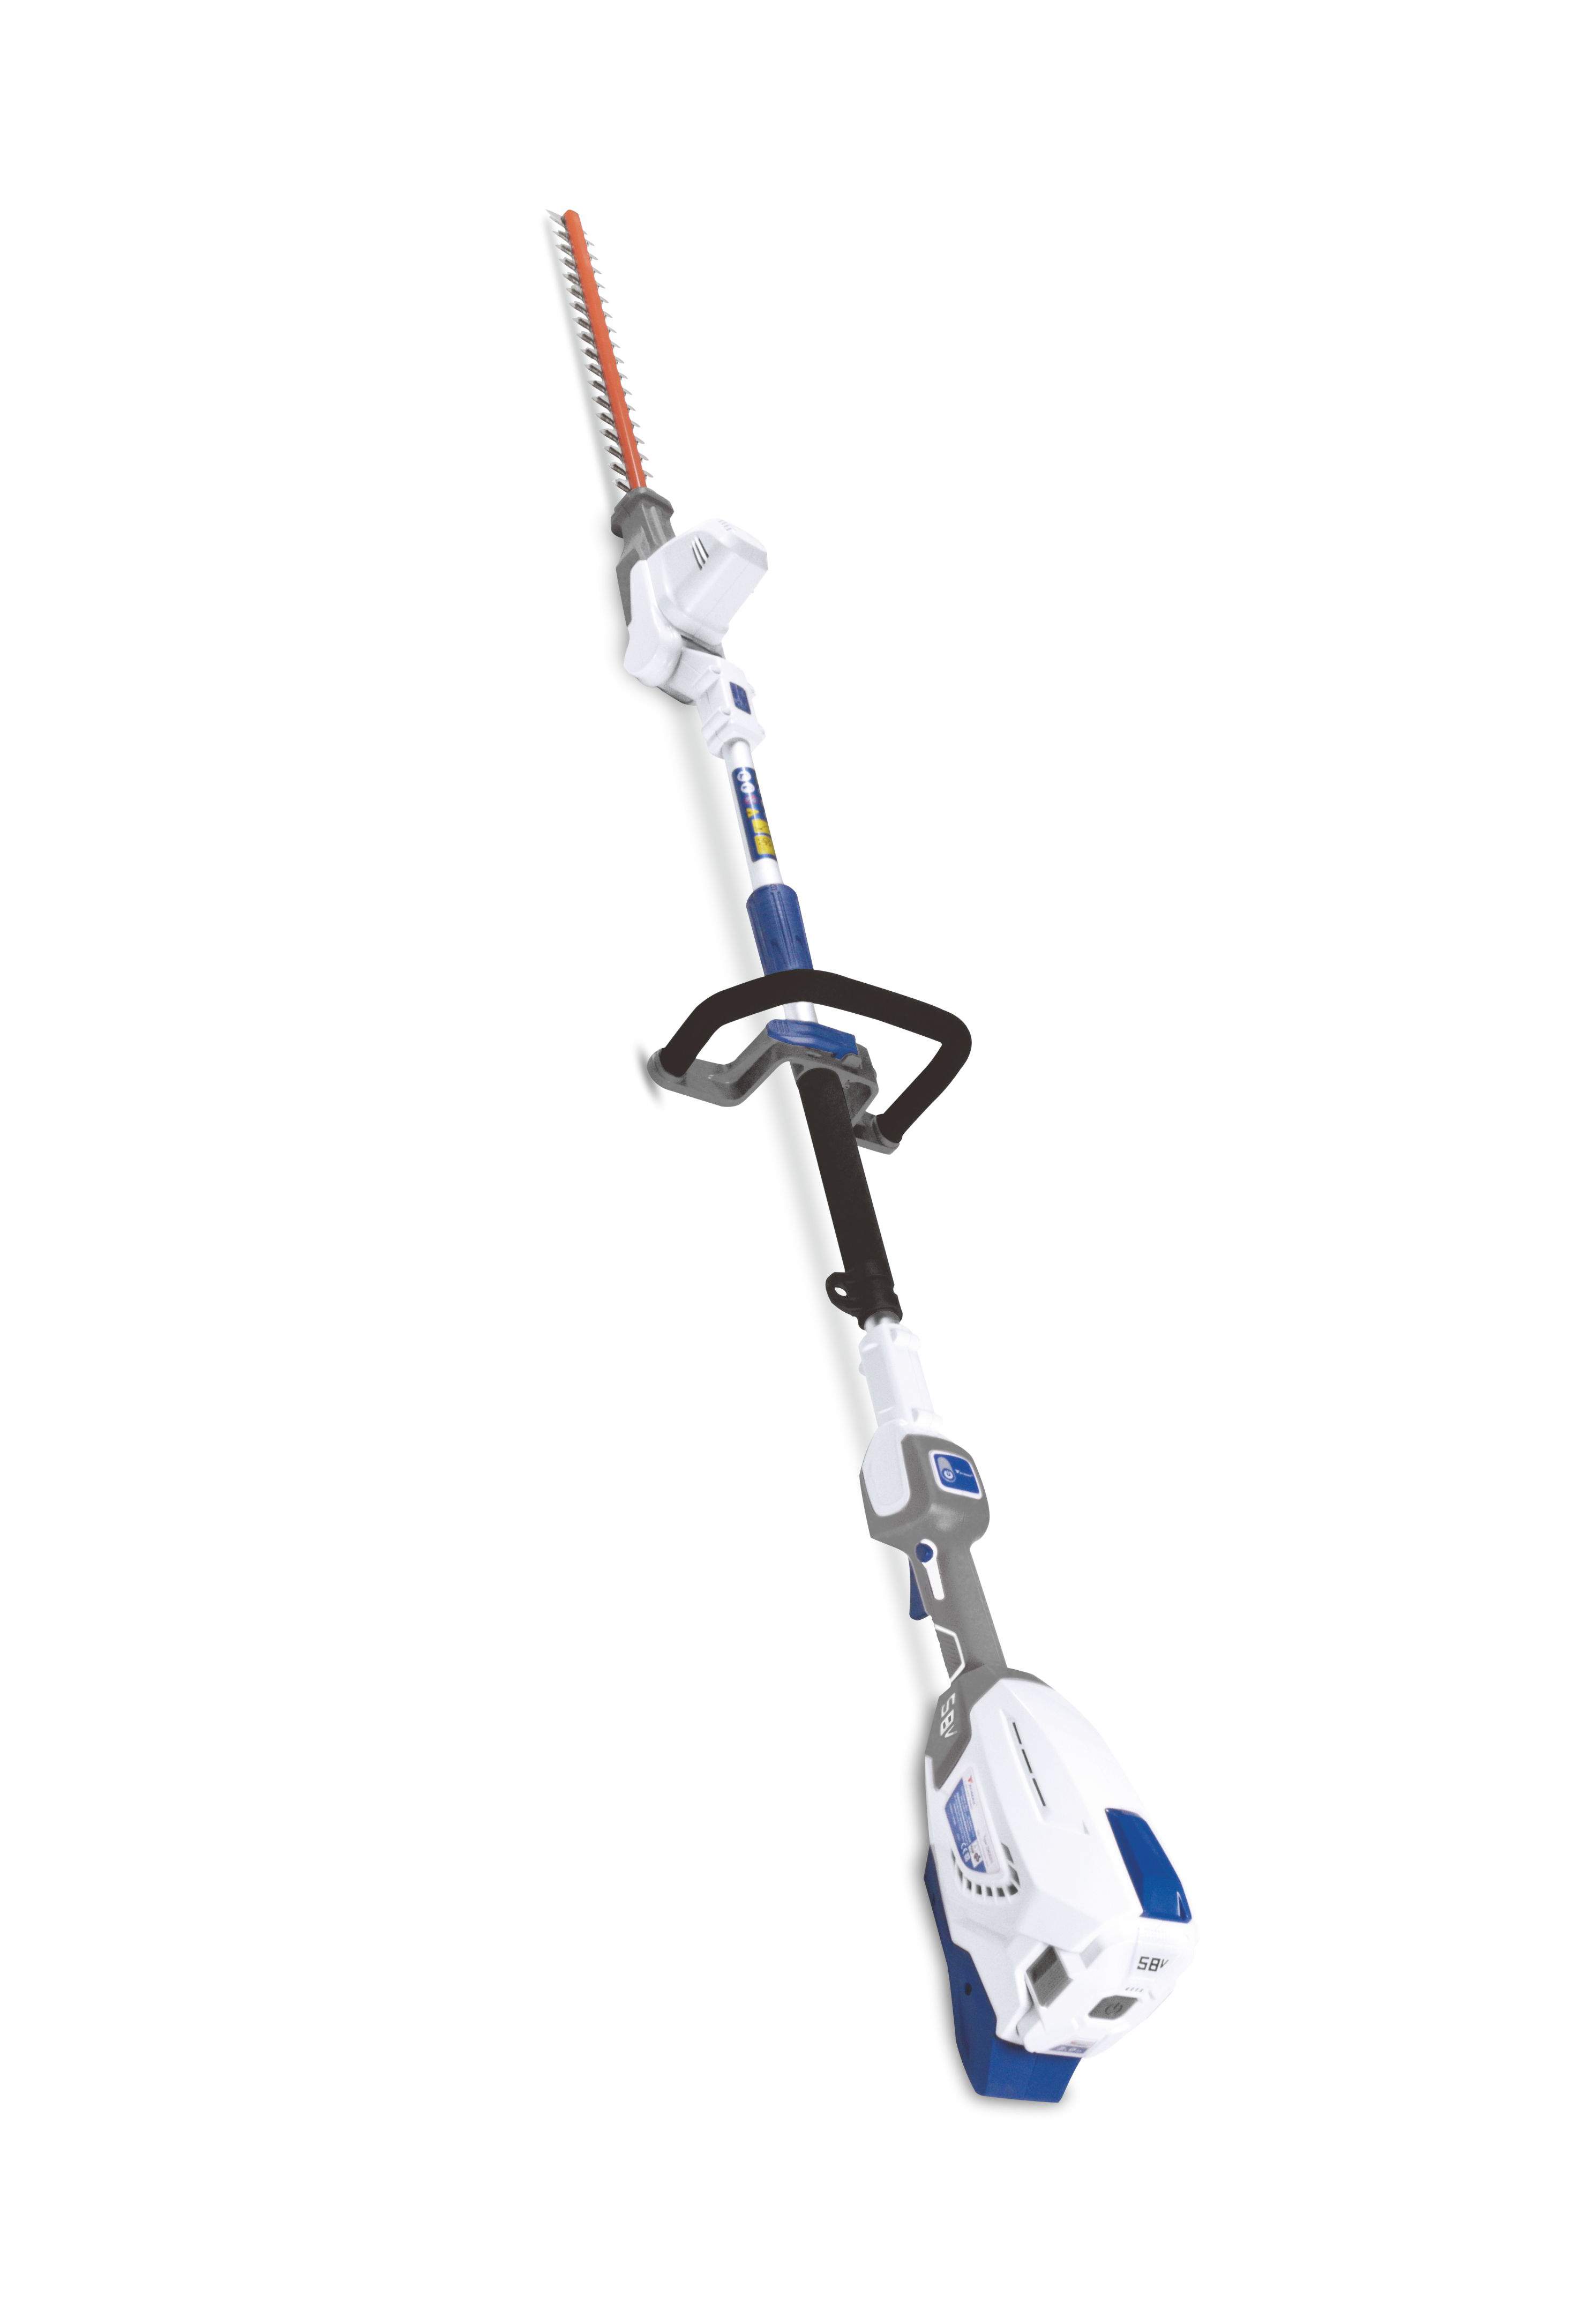 ZOMAX ZMDP552 58V CORDLESS POLE HEDGE TRIMMER